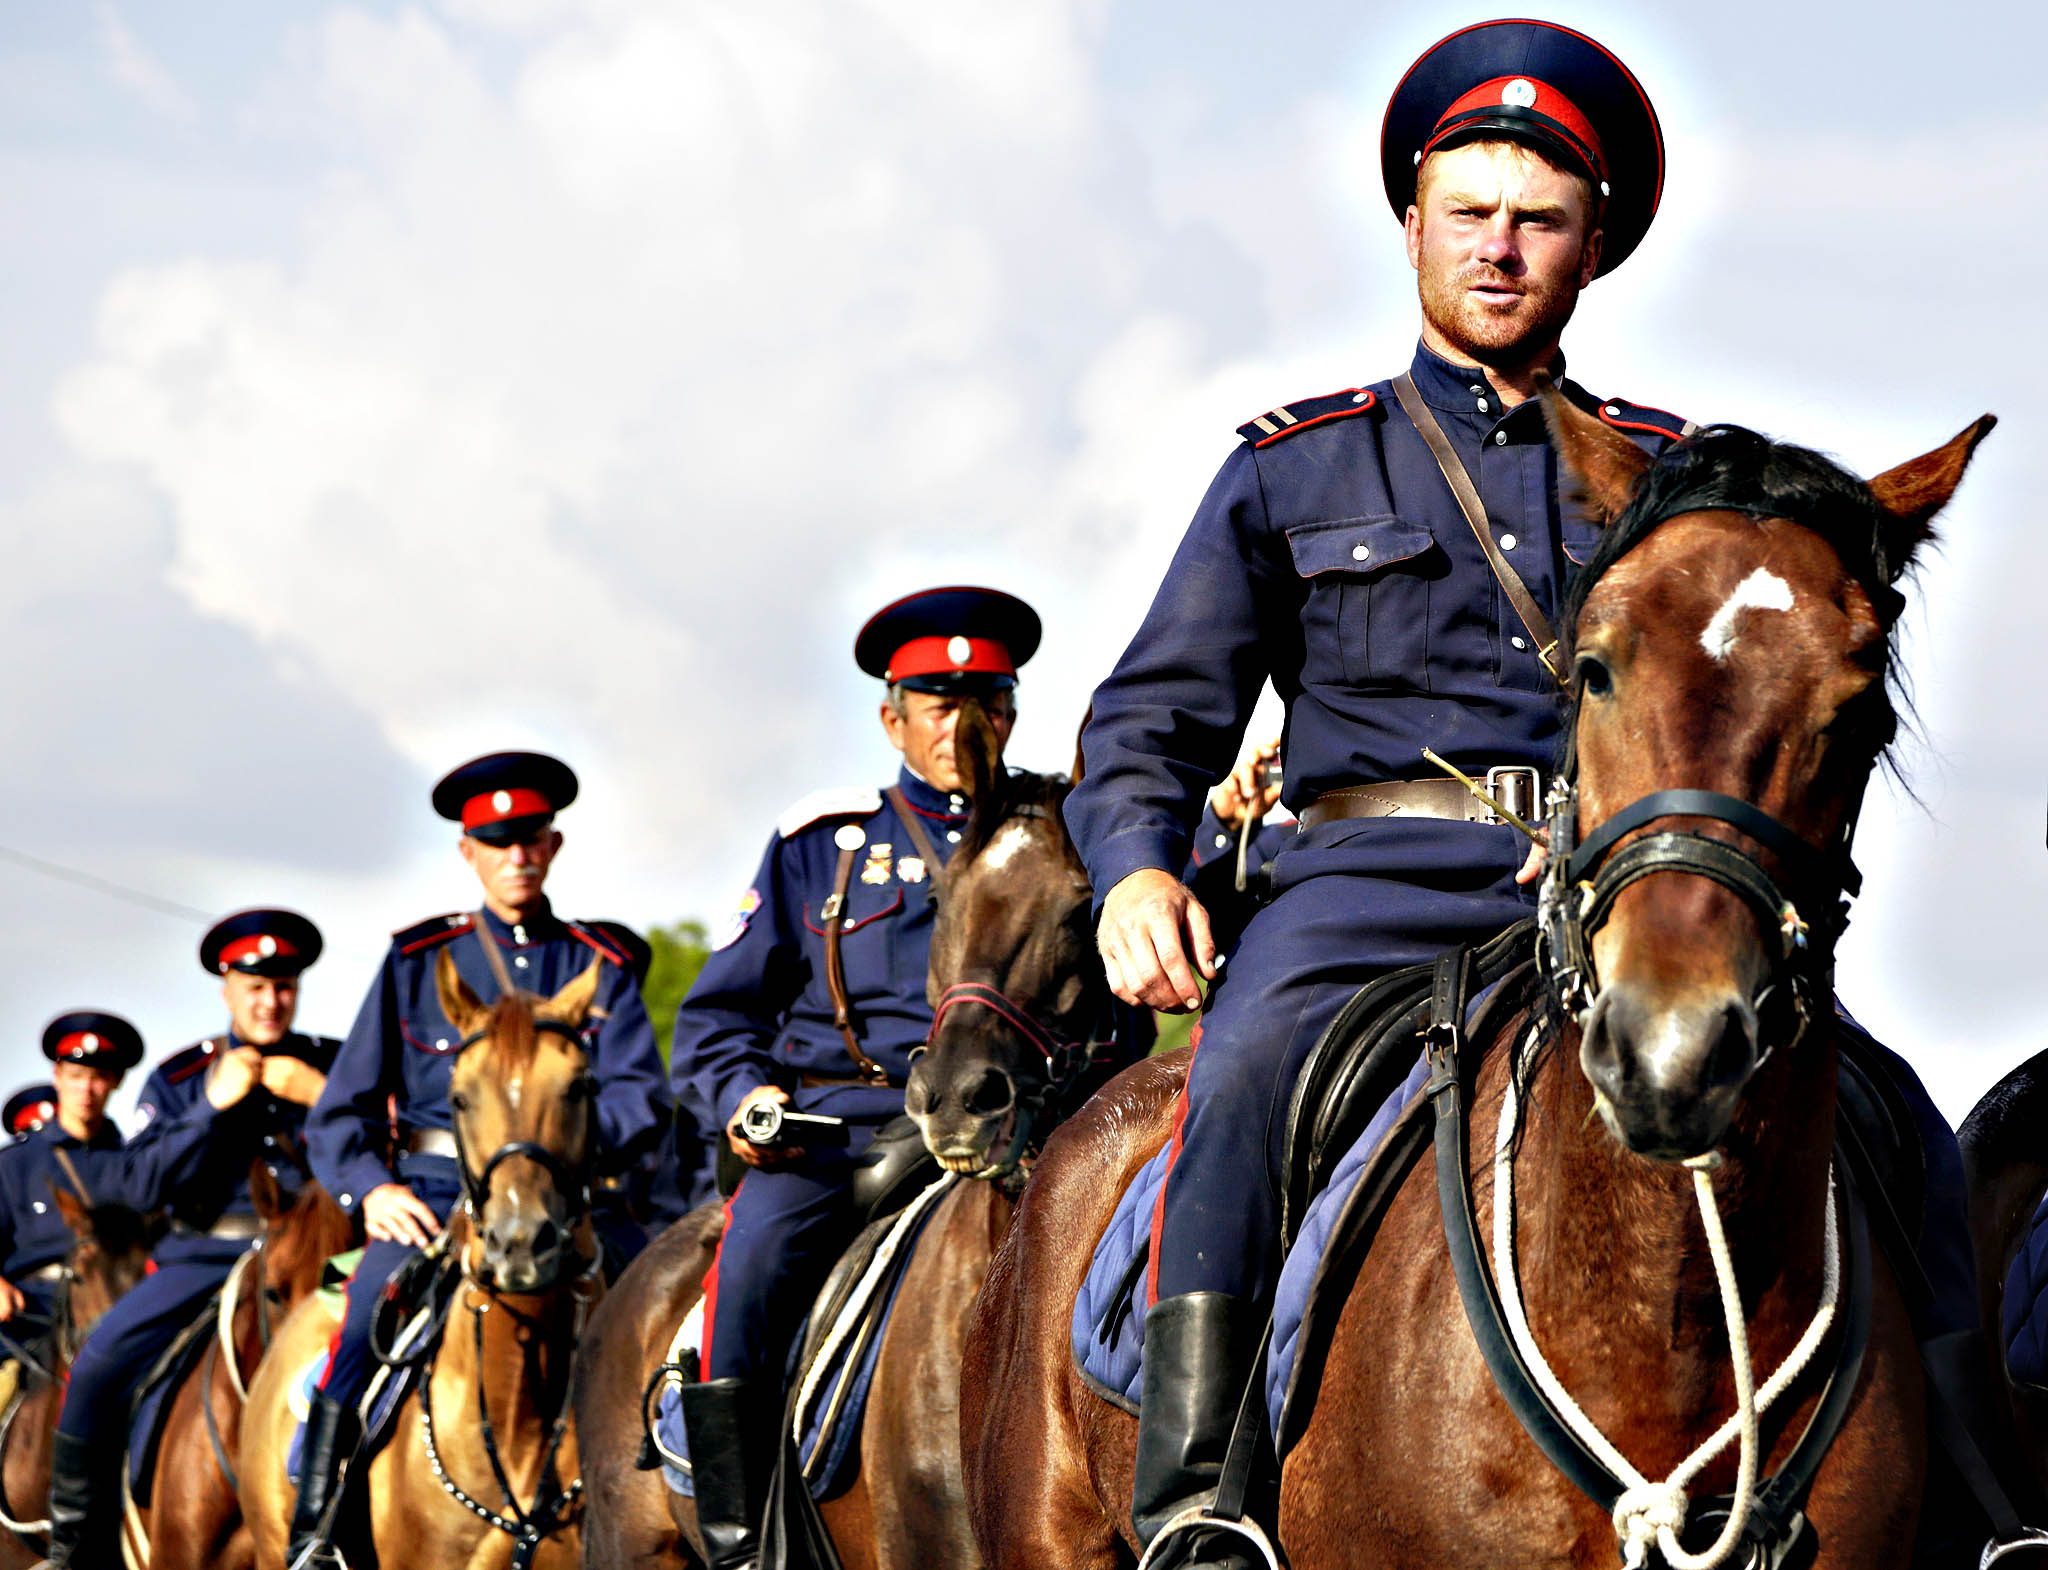 Mounted cossacks from the Southern Russian city of Volgograd wear period uniforms as they ride along a street during a demonstration of patriotism in Simferopol on June 5, 2015.